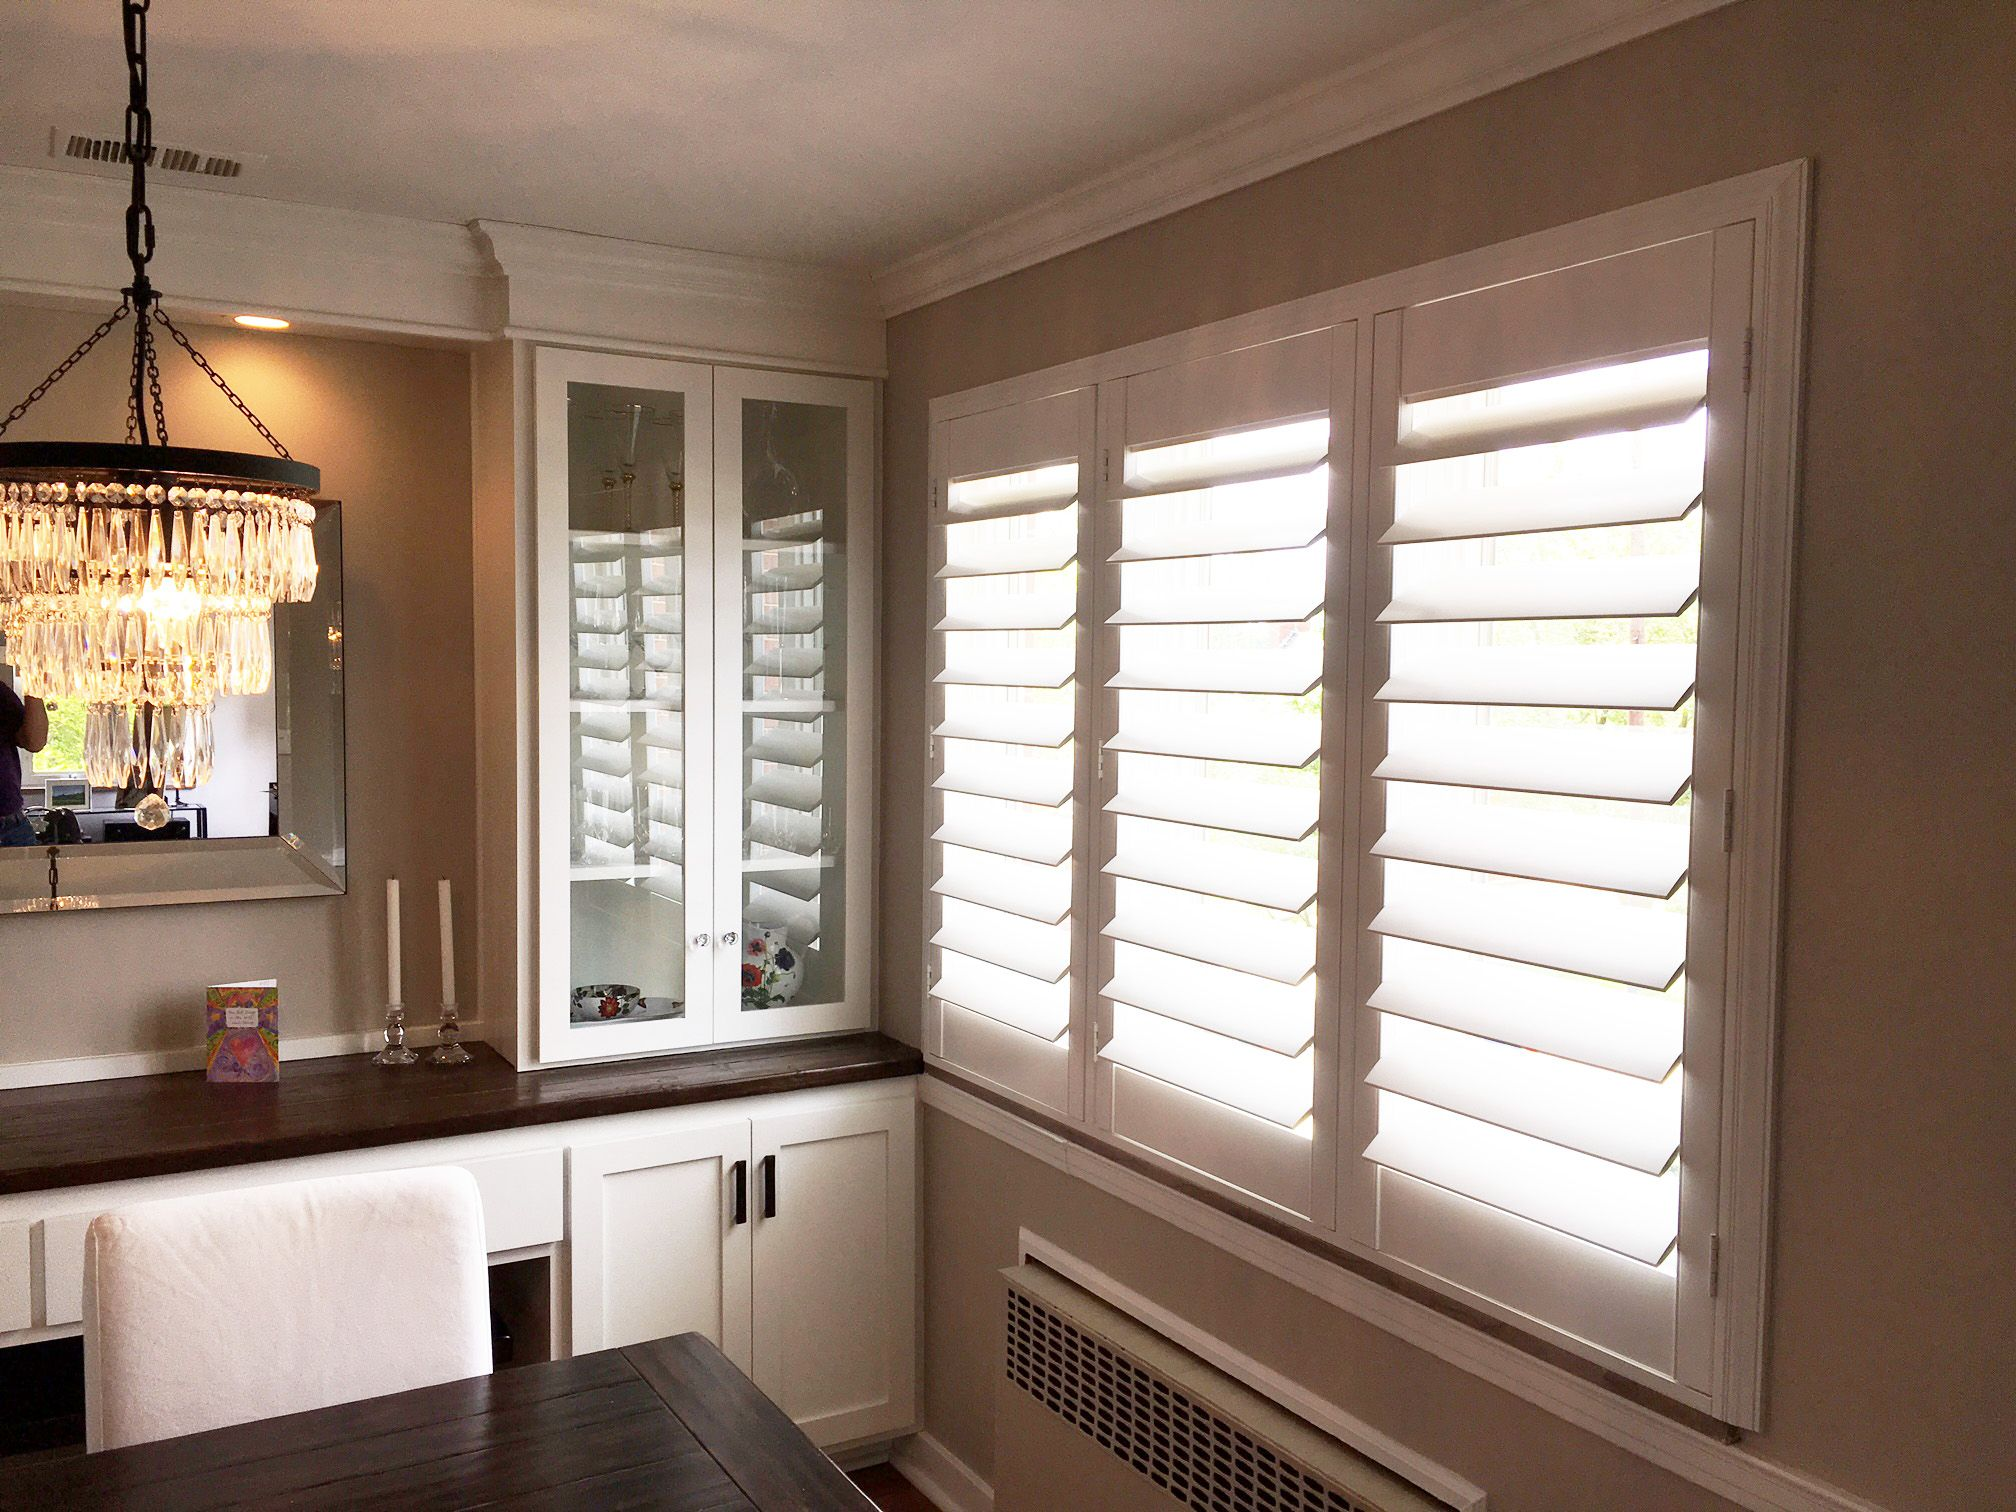 High Quality Our Louverwood Perfectview Styled Shutters In A Dining Room. Not Only  Beautiful But Energy Efficient